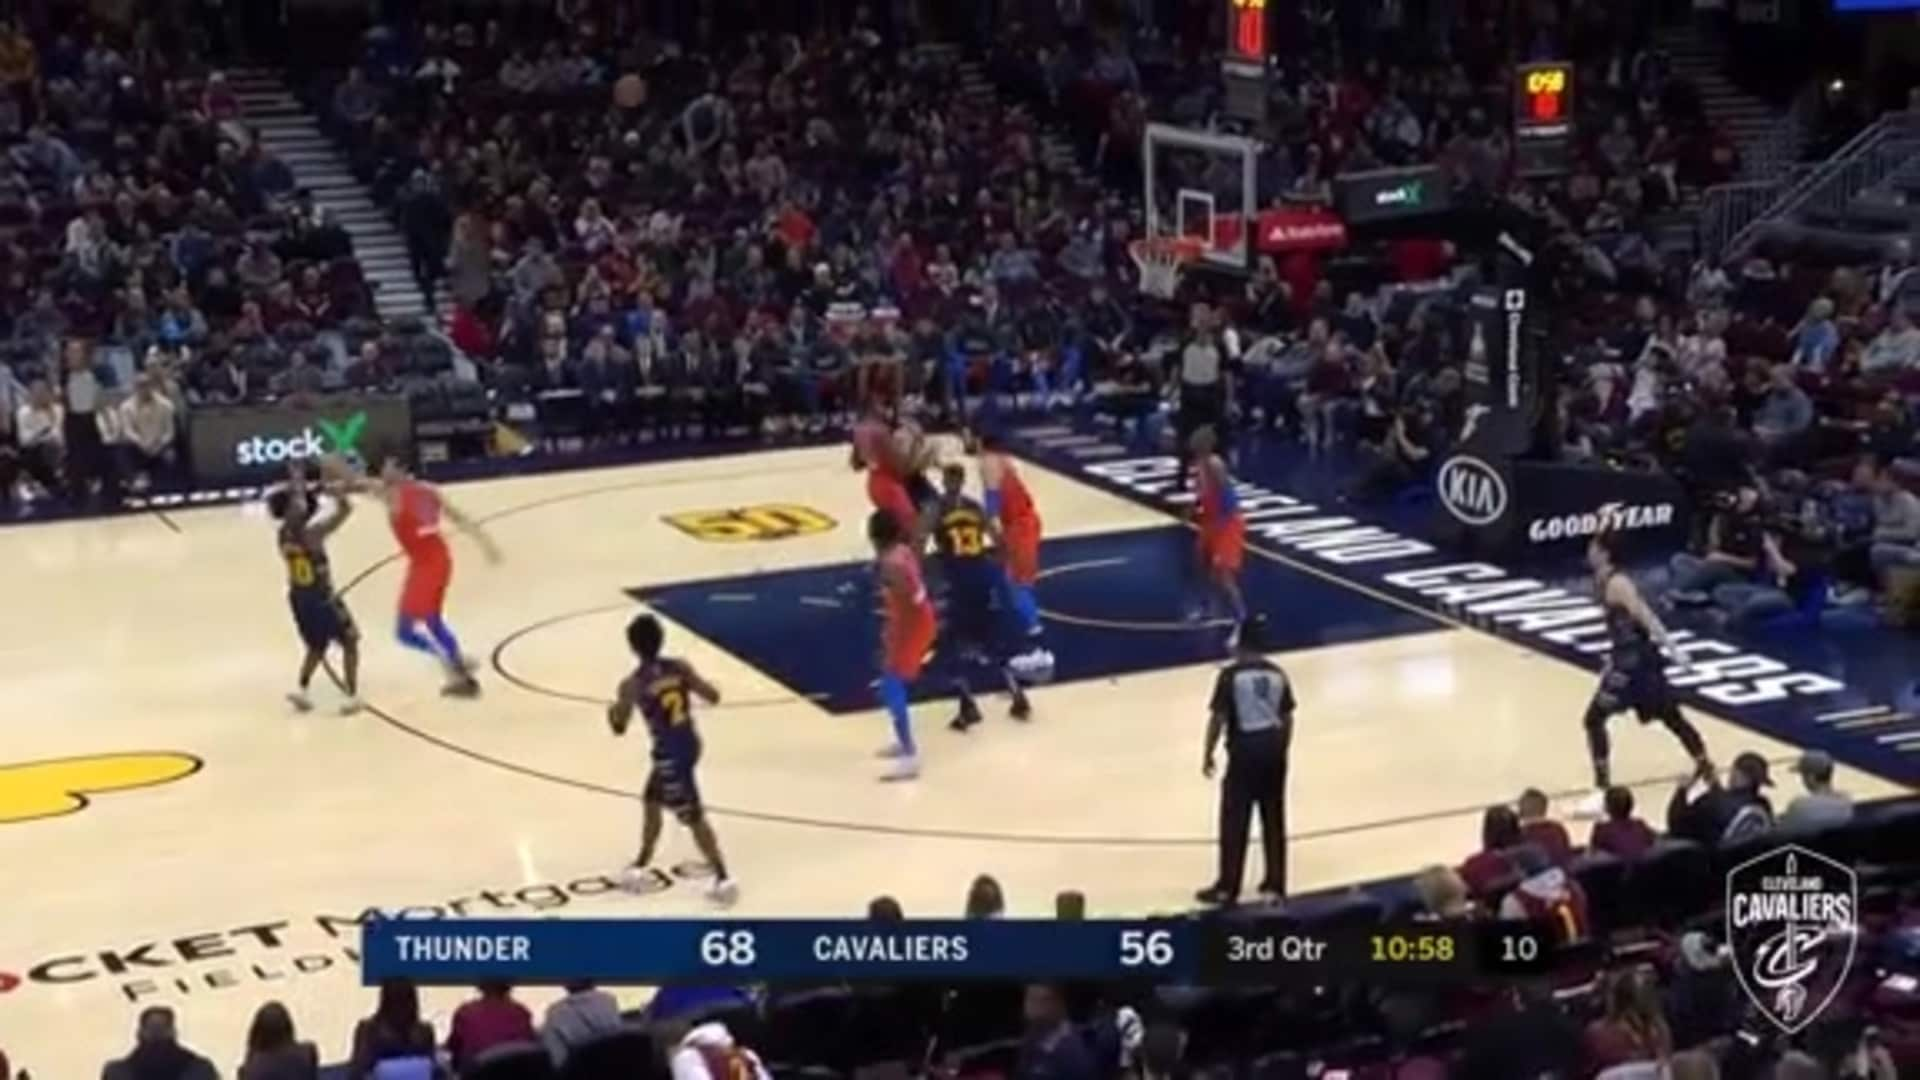 Garland with the Pinpoint Trey